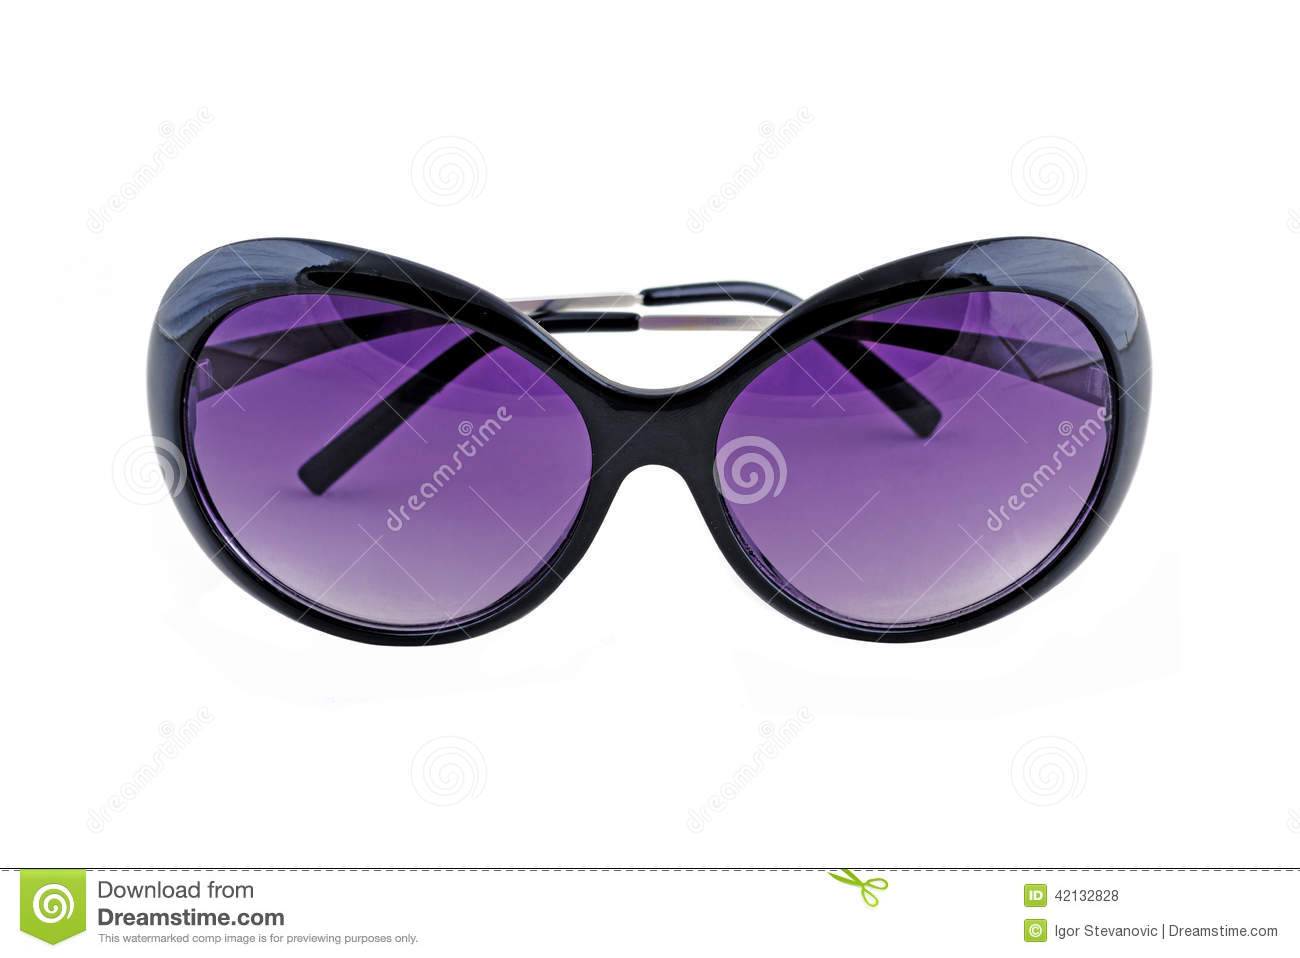 8b79068f6 Stylish female sunglasses on white background. Cool shades for women.